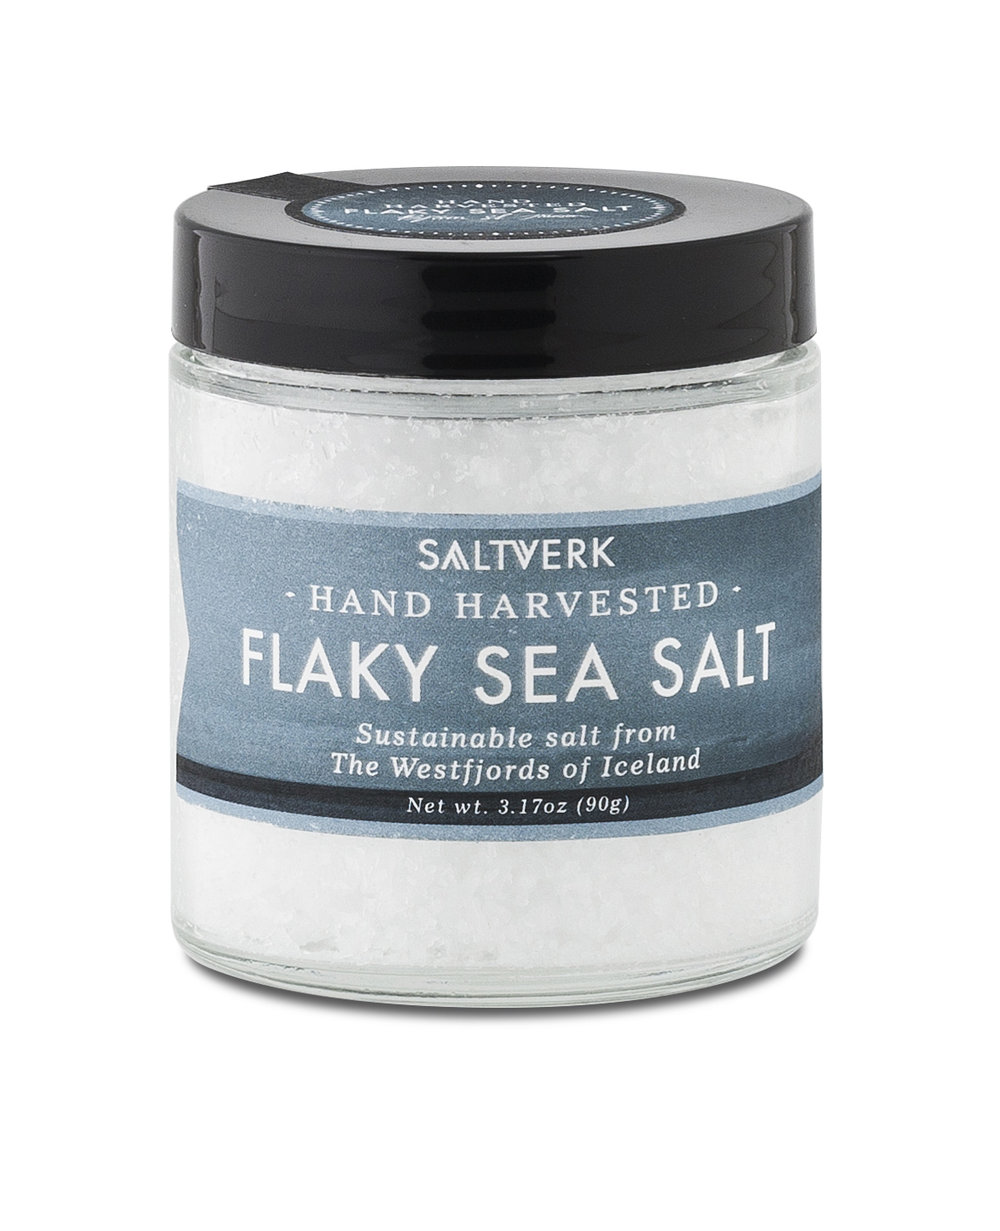 Flaky Sea Salt - $10